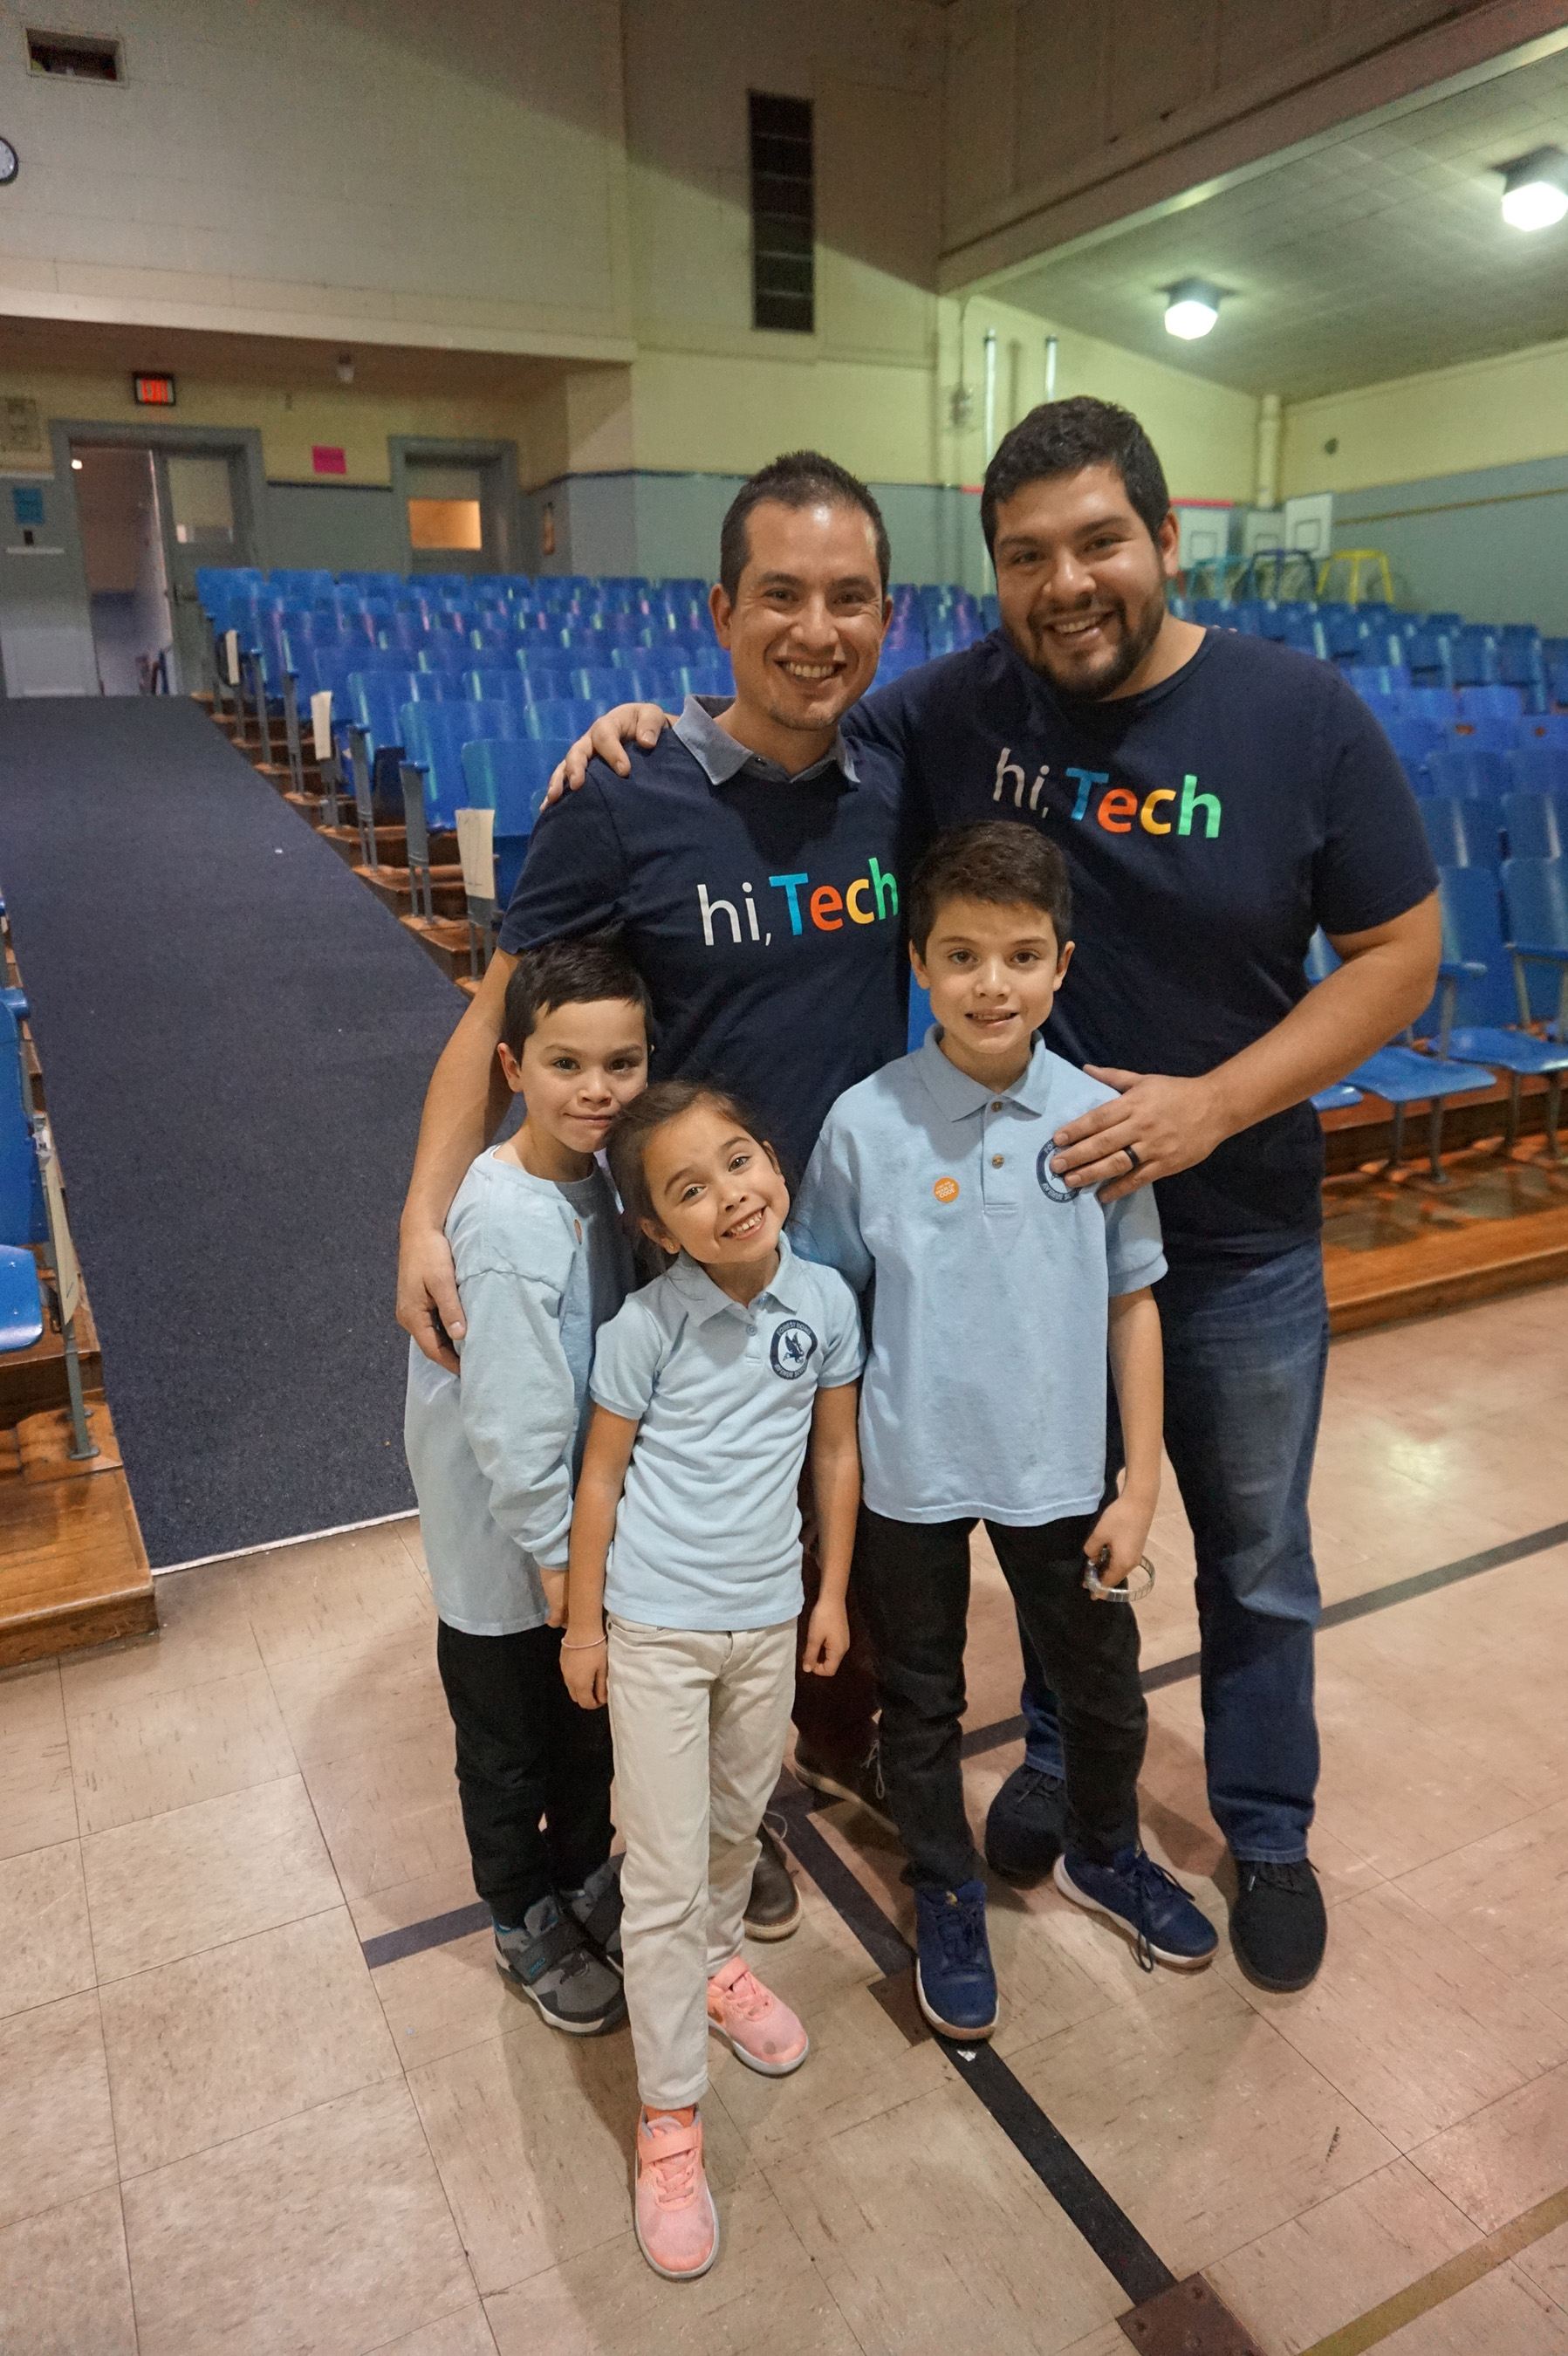 Northwestern Mutual employees and brothers Daniel Andrade and Omar Andrade led an Hour of Code with over 150 K4-5th graders at Forest Home Avenue School, where Daniel's three children (pictured) attend school.